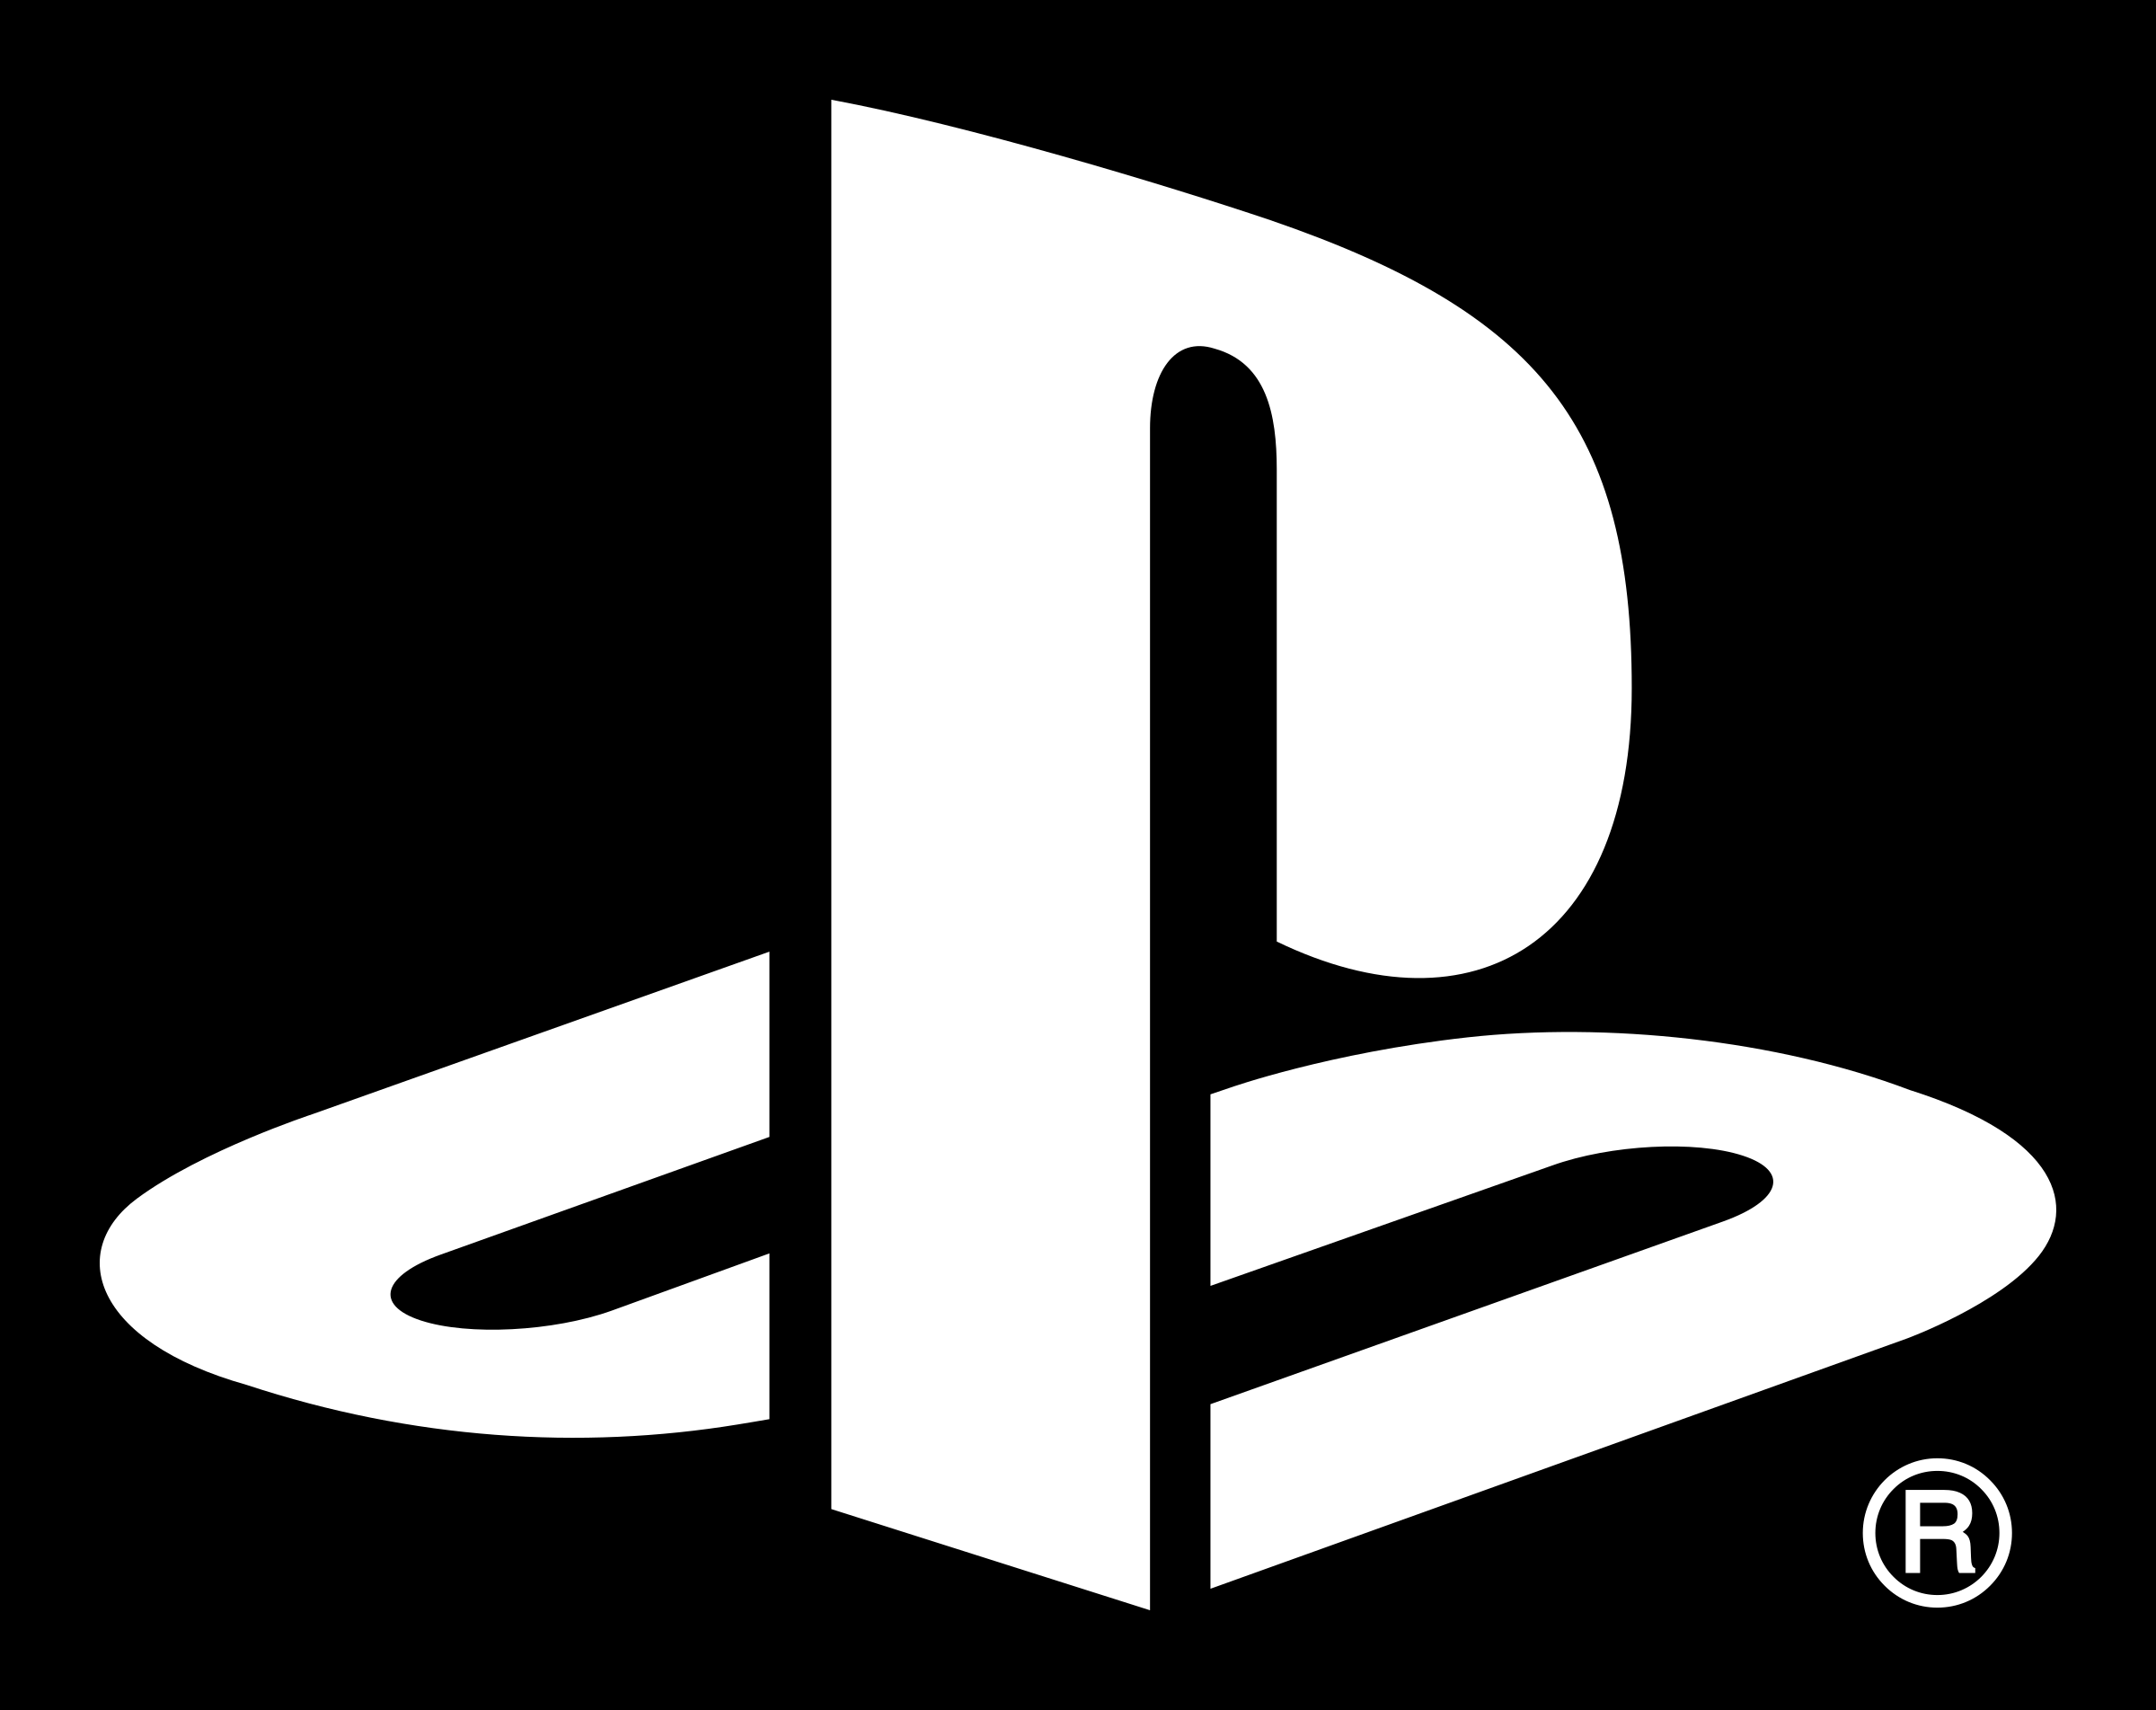 PlayStation Logo PNG Transparent & SVG Vector.